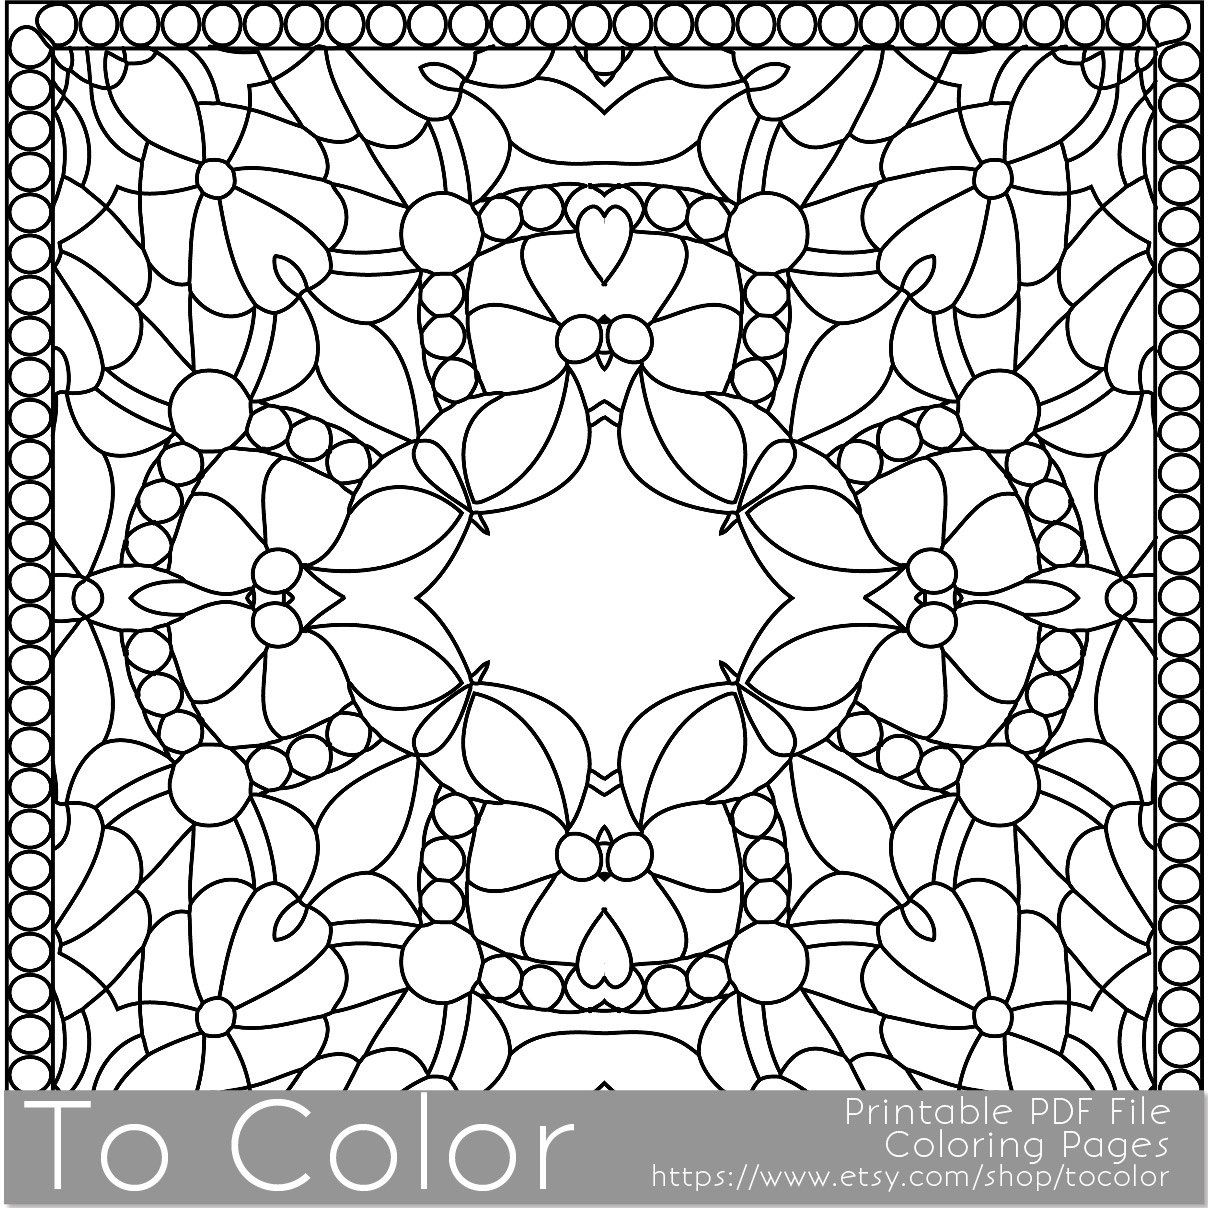 Printable Coloring Pages For Adults Square Coloring Pattern Instant Download